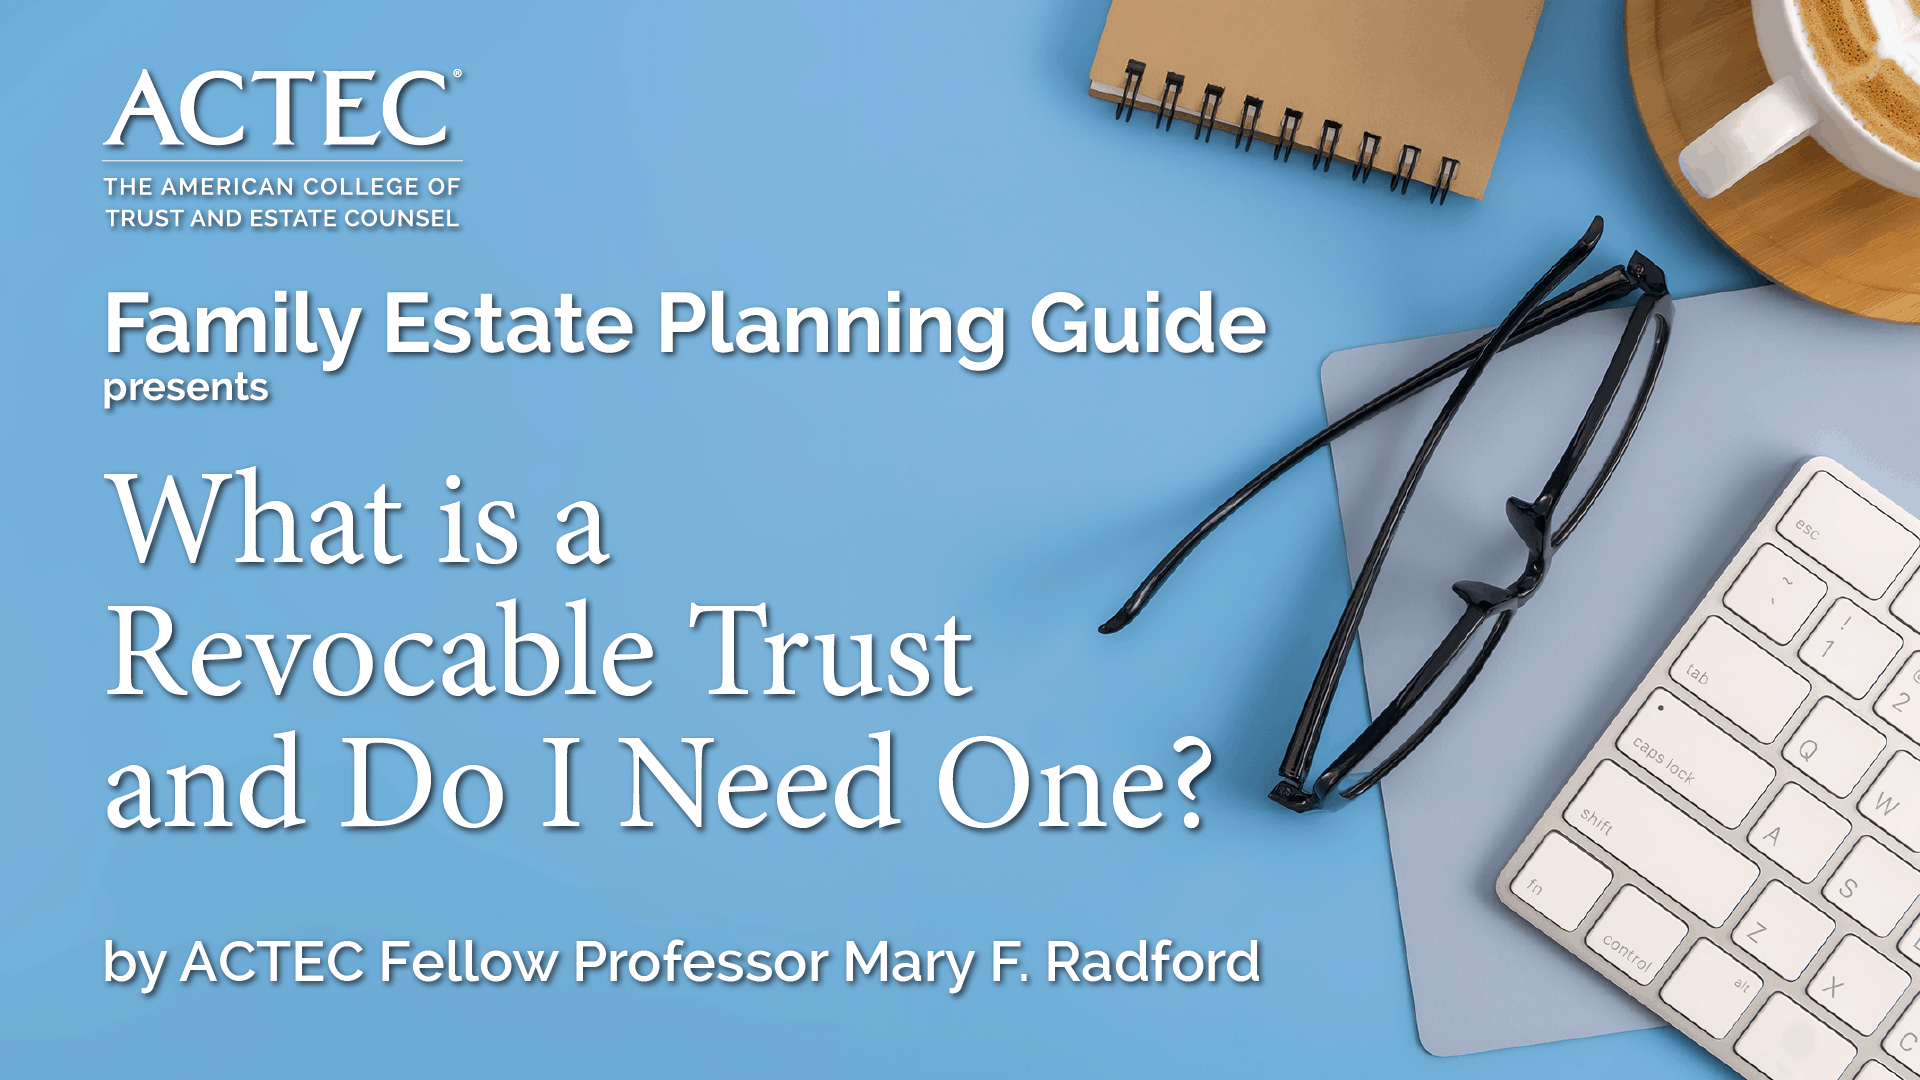 What is a Revocable Trust and do I need one?